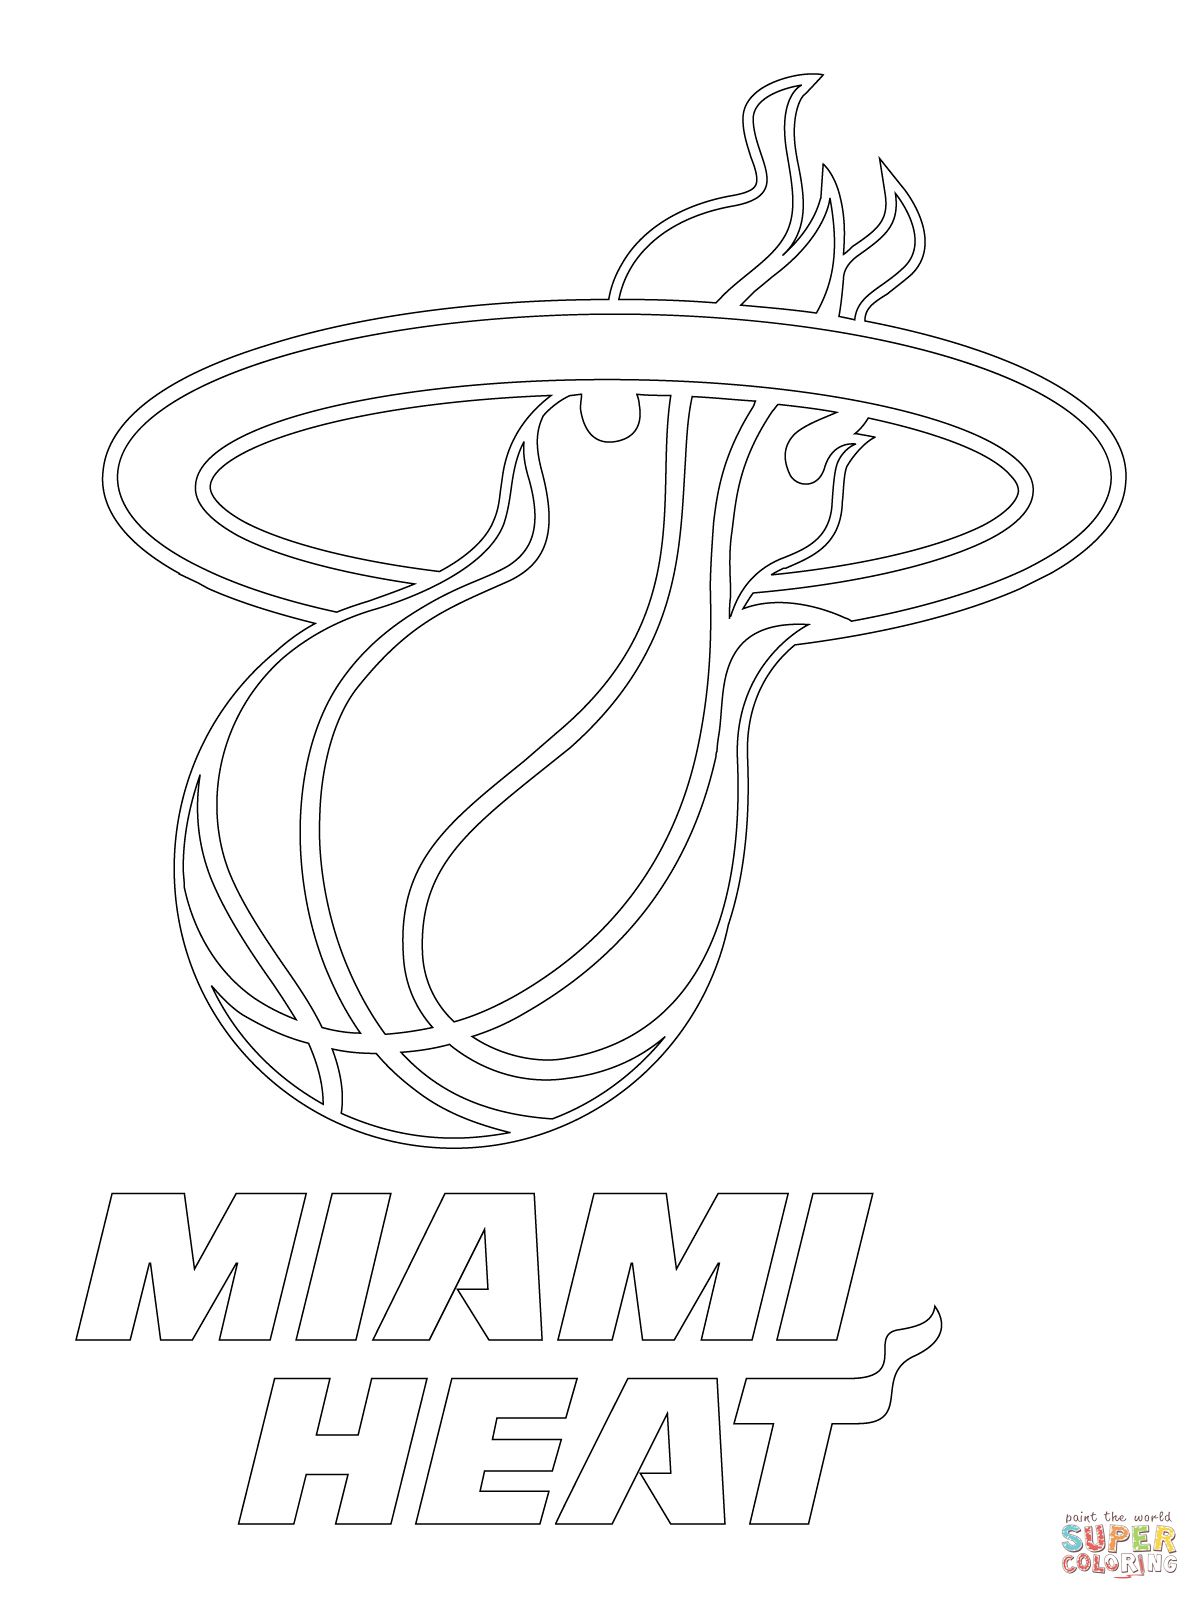 Miami Heat Logo coloring page SuperColoring.com | General ...